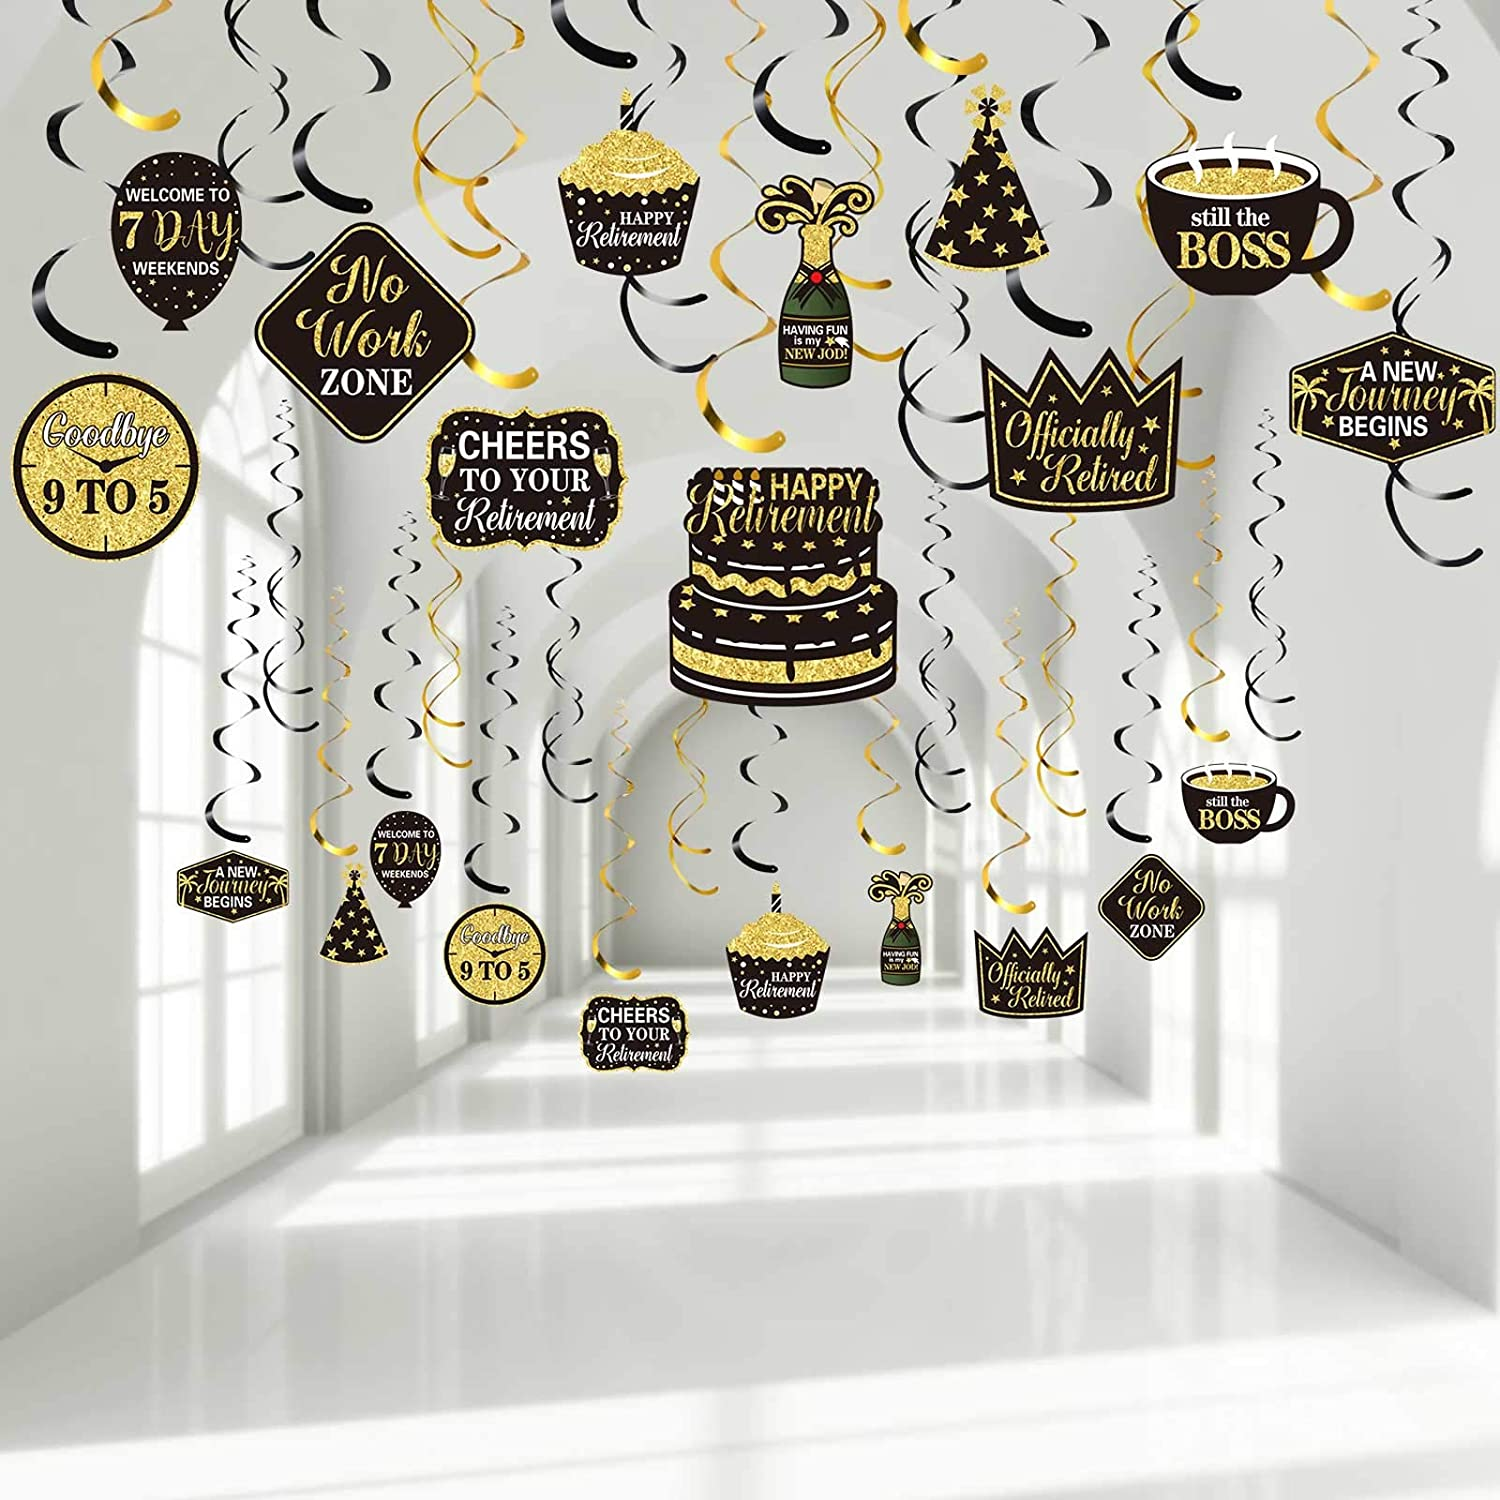 30 Pieces Retirement Party Hanging Swirls Decorations, Happy Retirement Office Retirement Swirls Decorations Black Gold Foil Ceiling Decorations for Men Women Retirement Party Indoor Outdoor Supplies